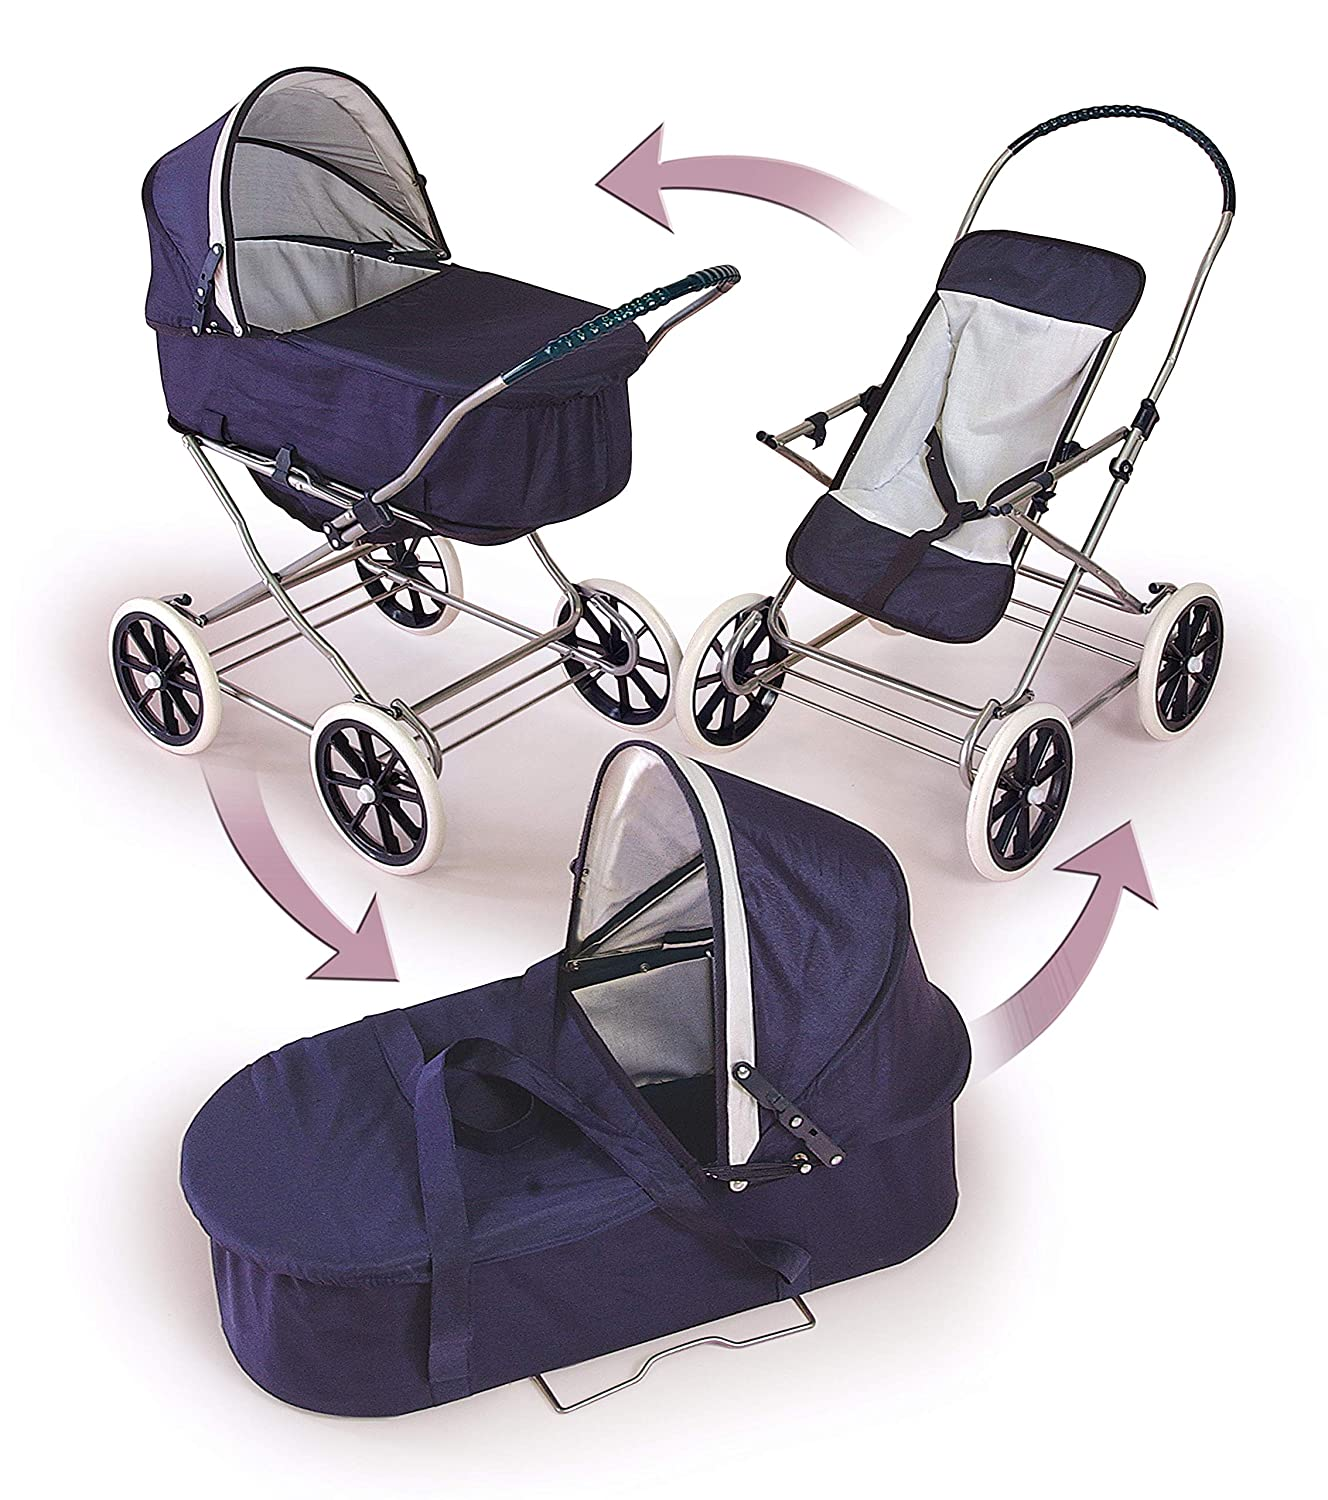 Badger Basket Pink Rosebud 3-in-1 Doll Pram and Stroller Carrier fits American Girl dolls